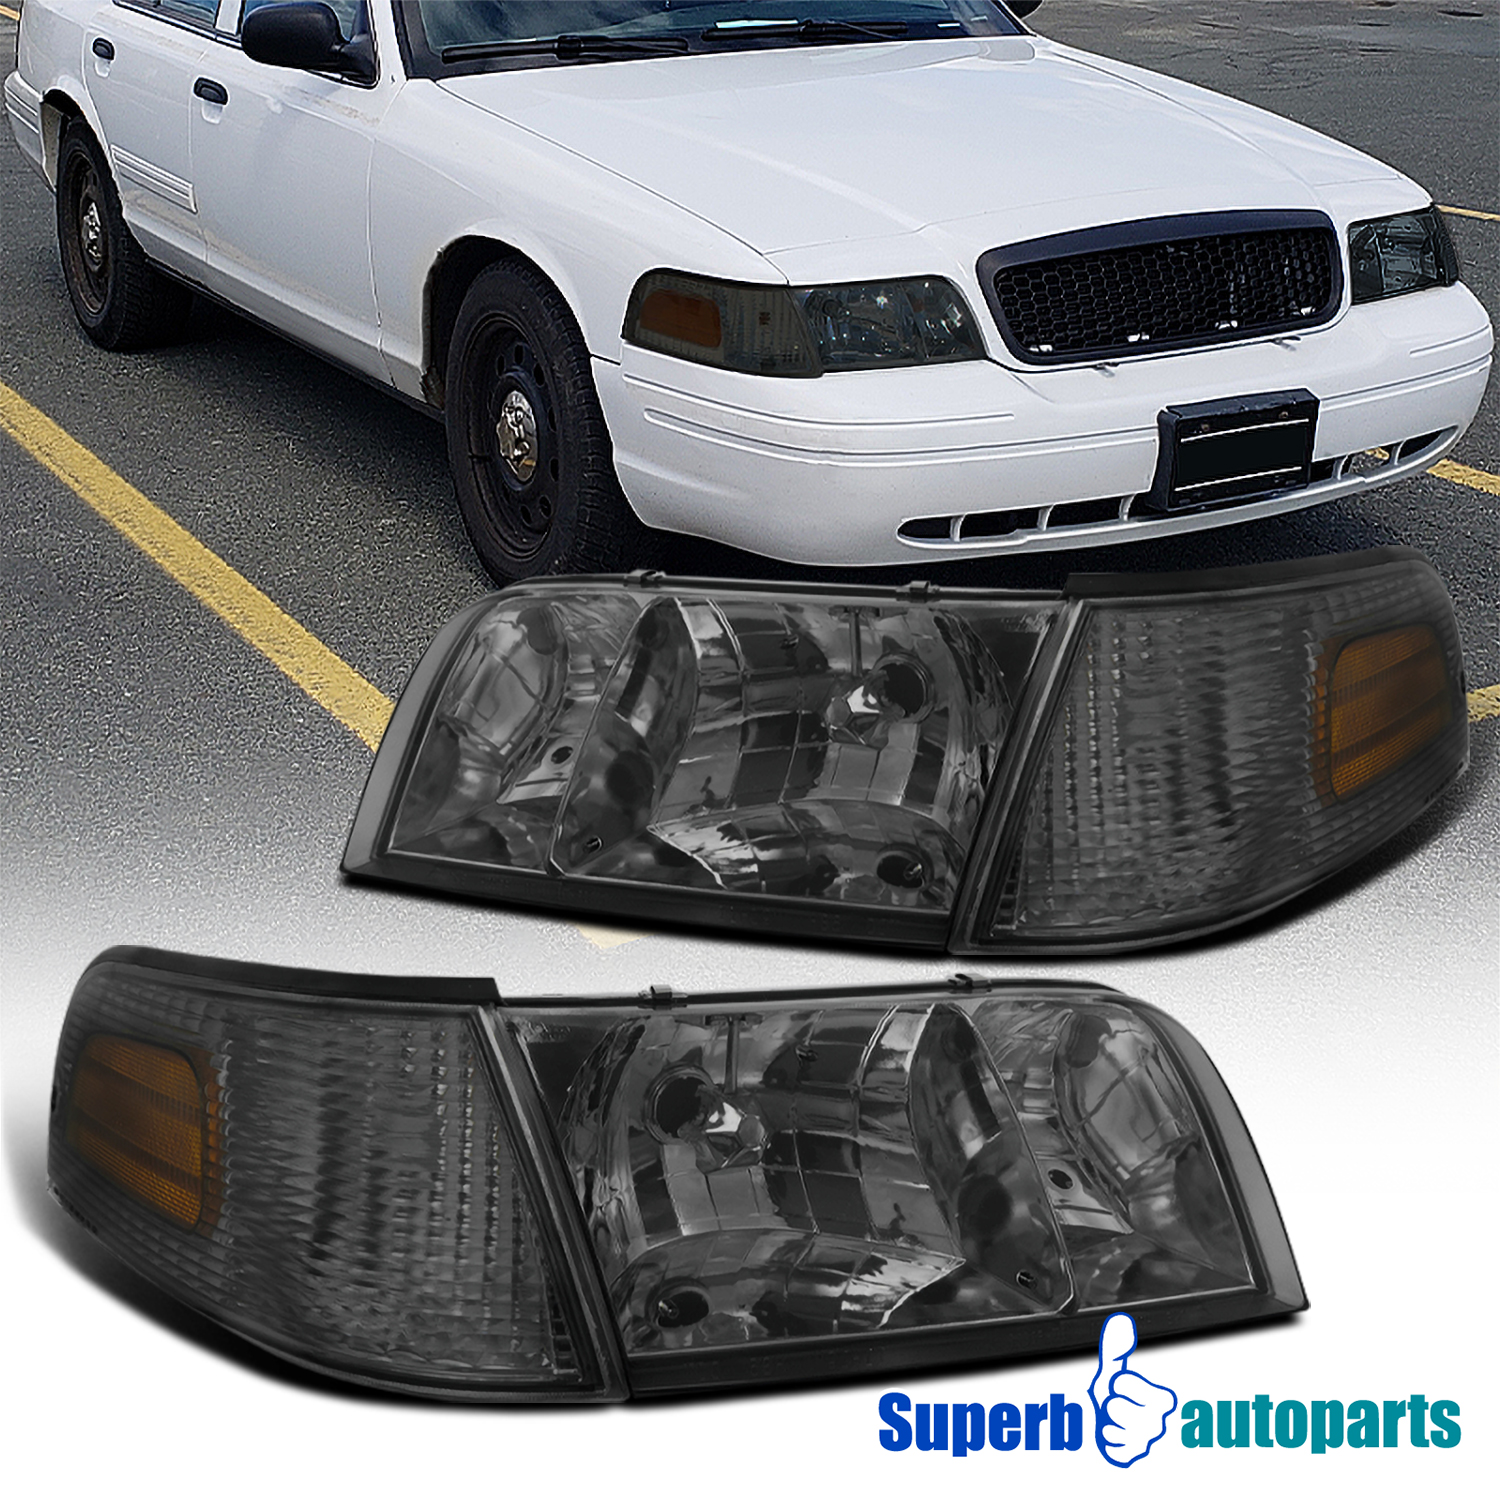 For 1998-2011 Ford Crown Victoria Black Headlights w// Corner Signal Lamps